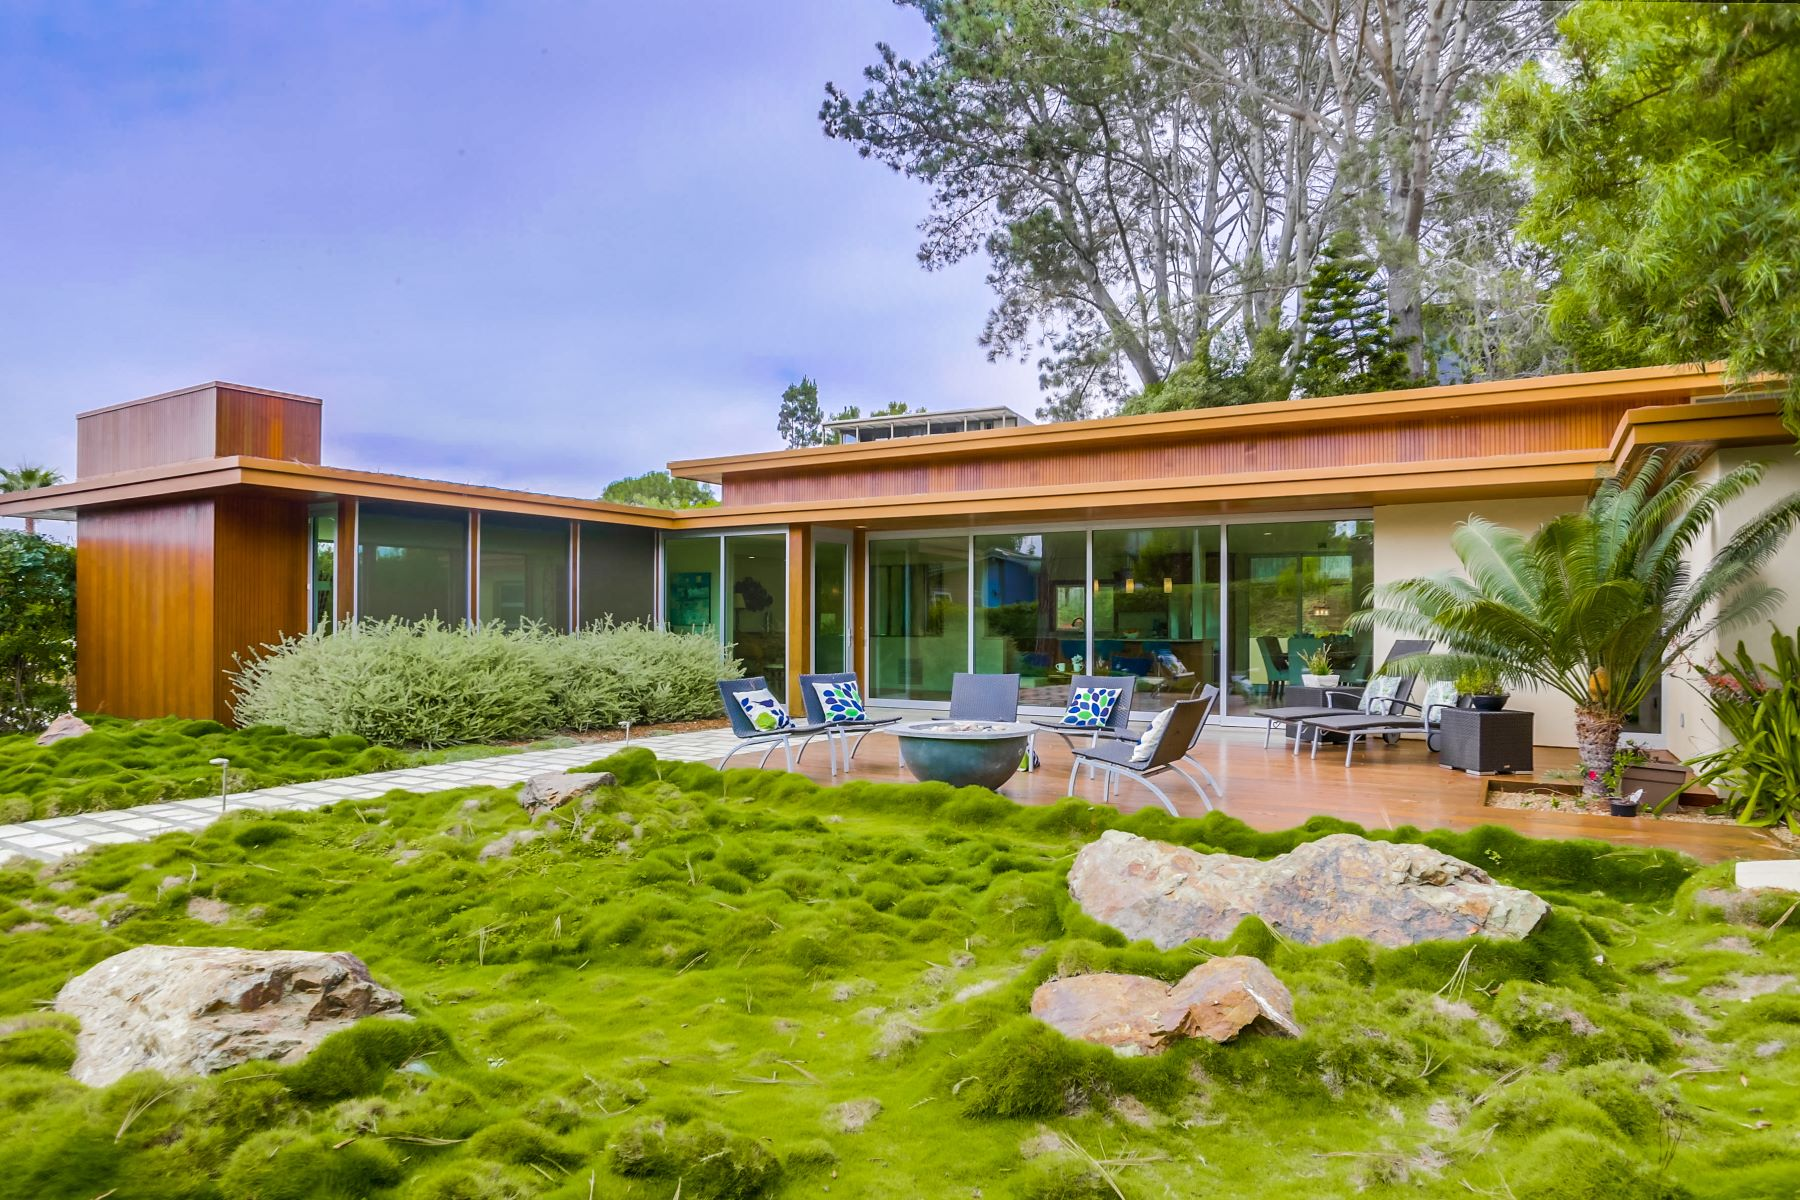 Single Family Home for Active at 560 Orchid Lane 560 Orchid Lane Del Mar, California 92014 United States